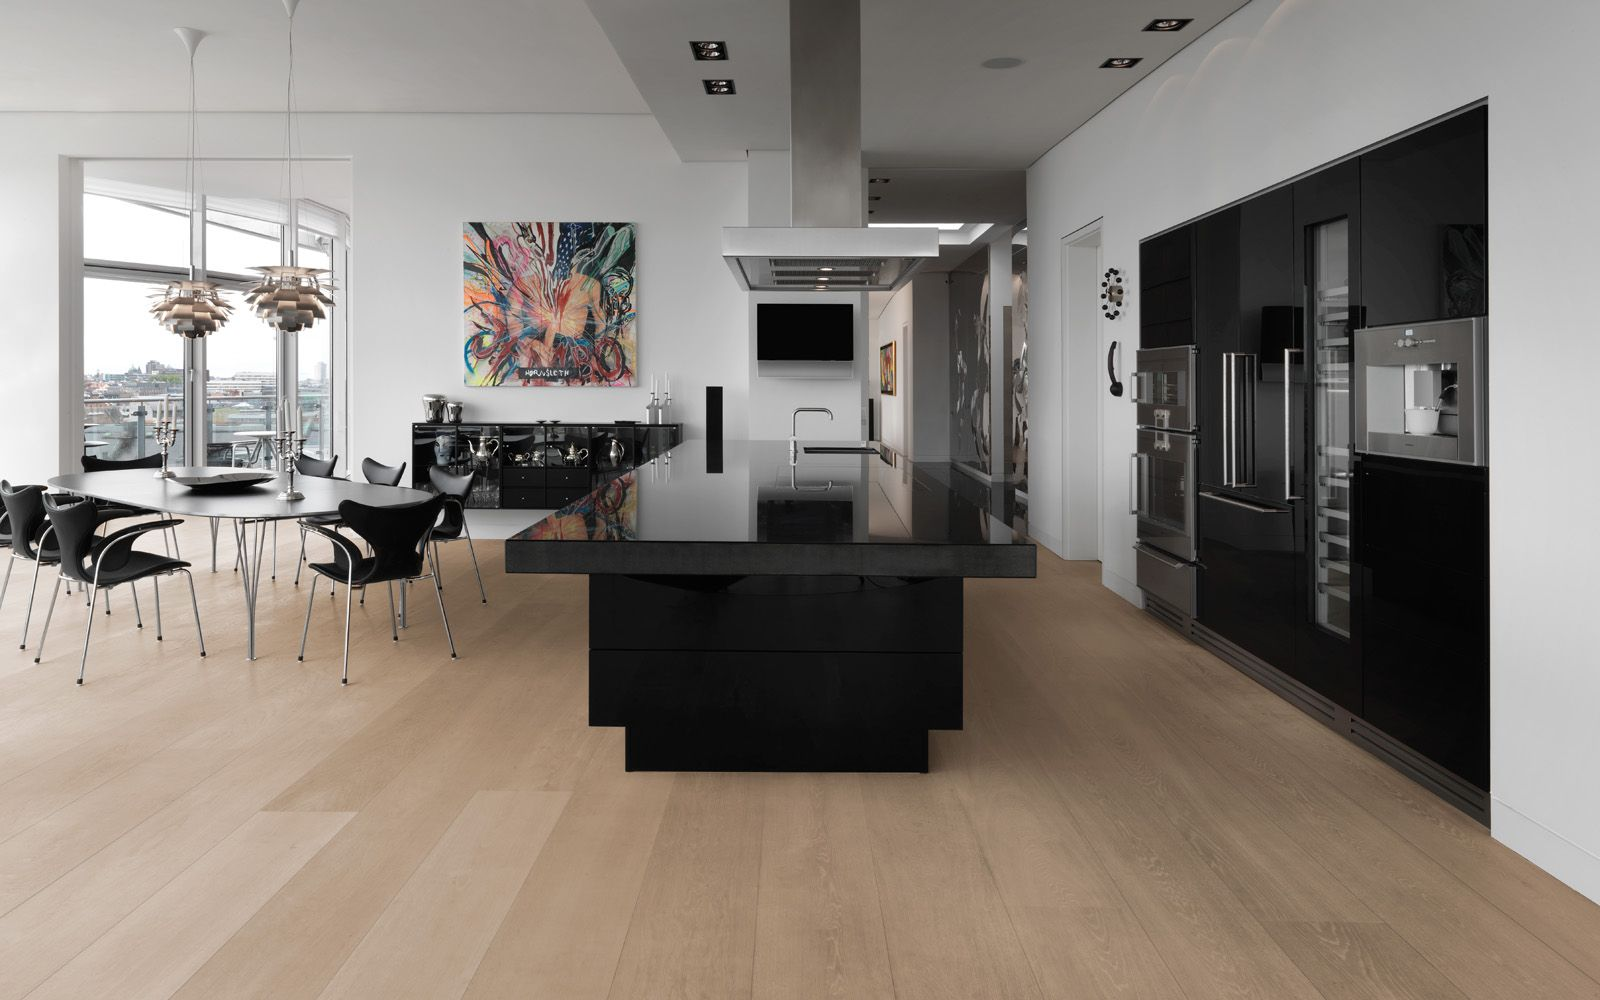 Tarima Flotante Para Suelo Radiante Dinesen Wood Floors Inspiration For Wood Flooring Interior